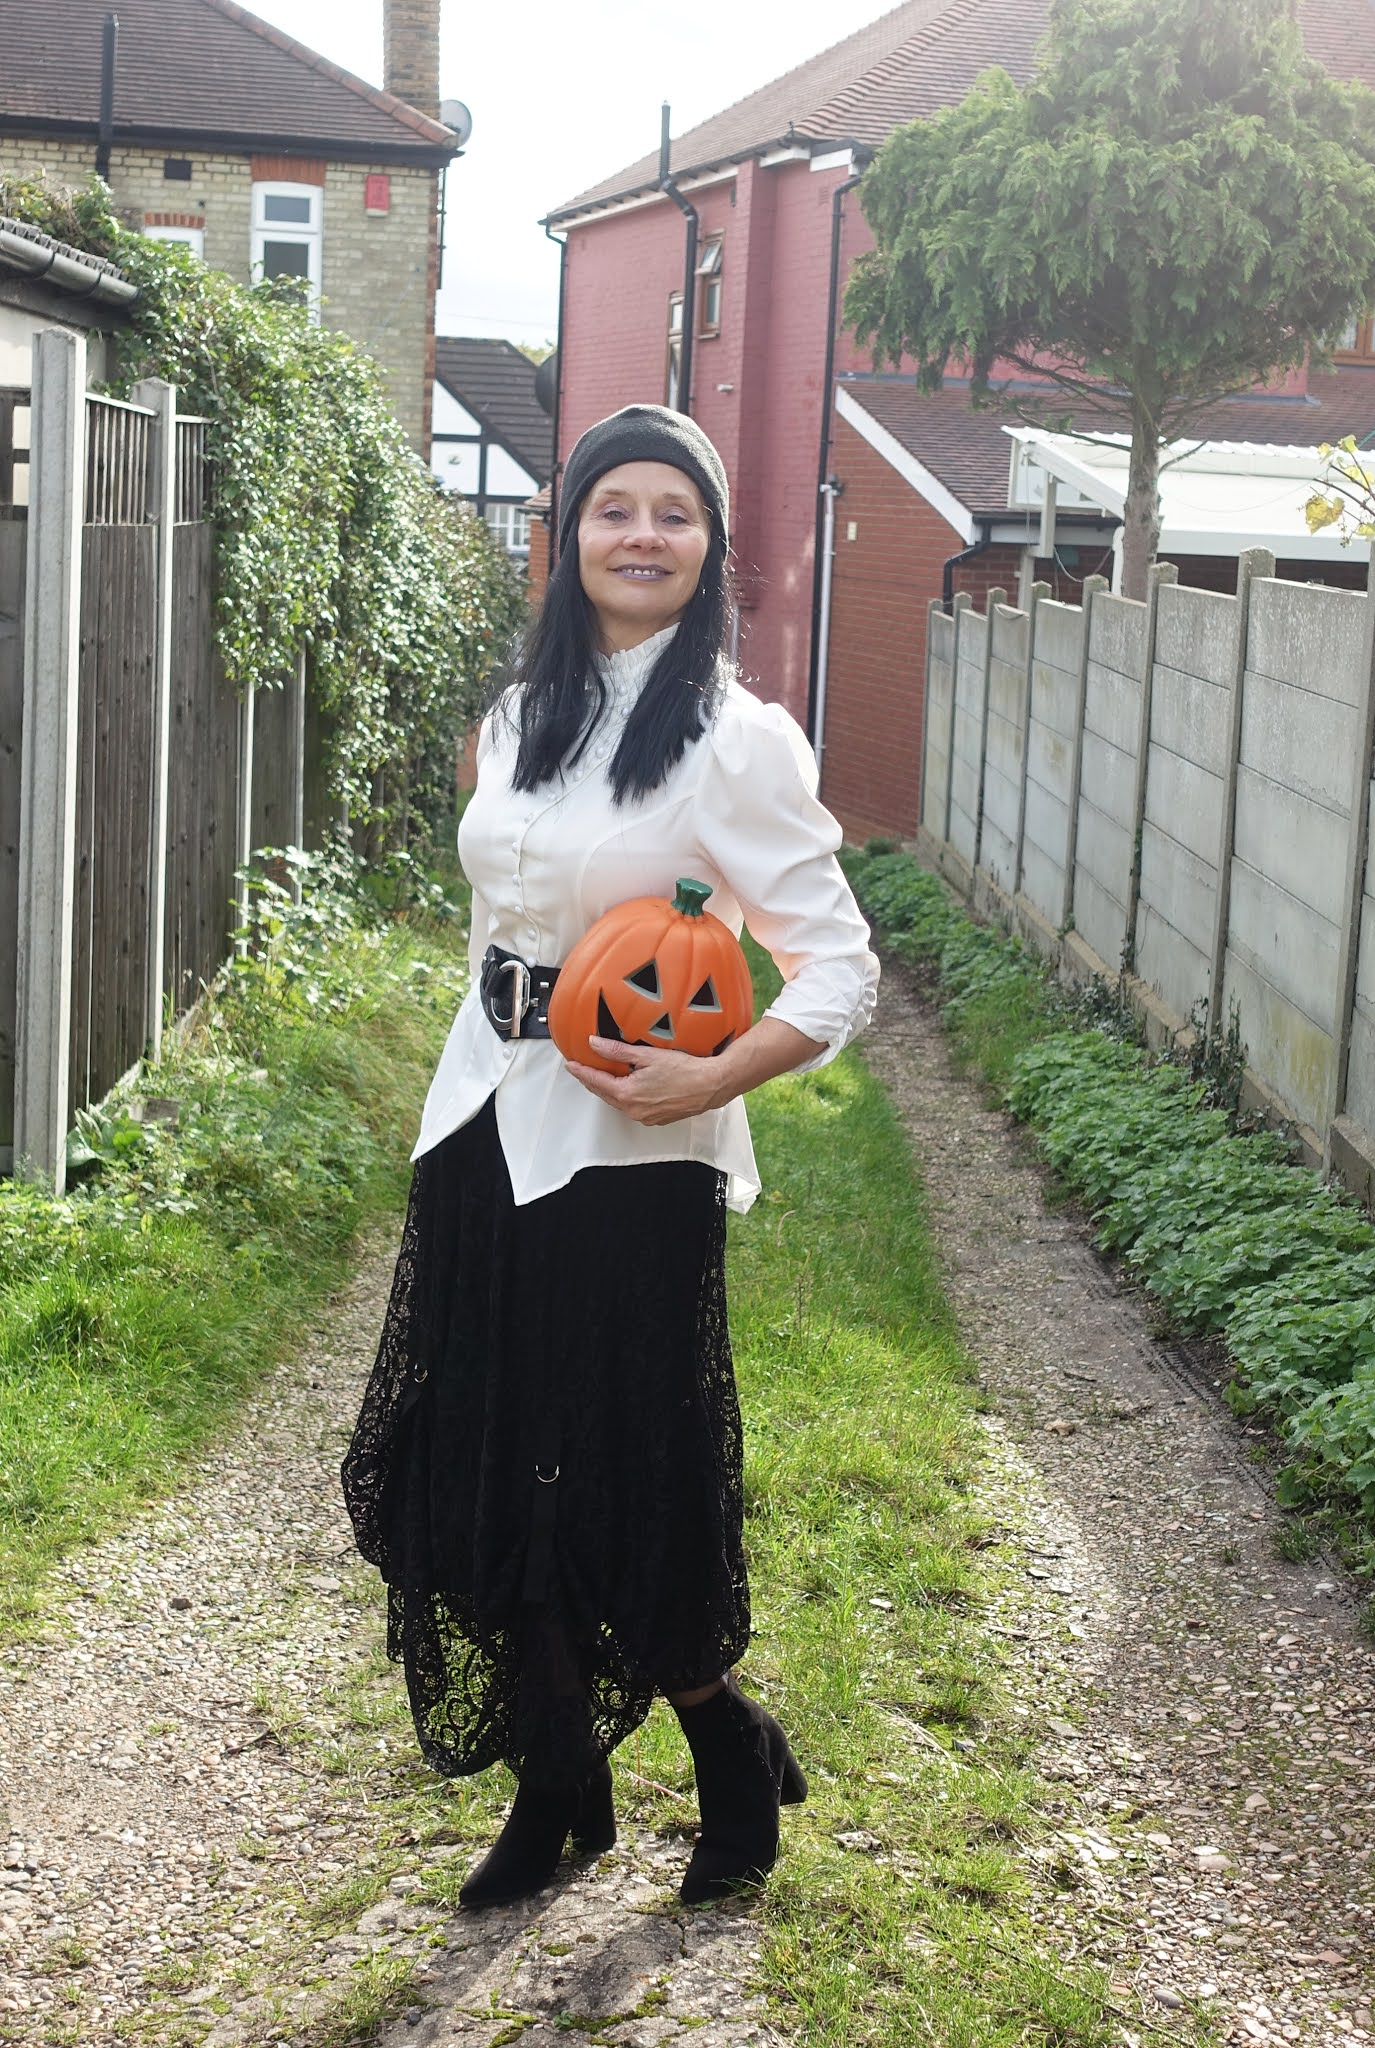 With Halloween approaching Is This Mutton's Gail Hanlon attempts to style Gothic Romance with a white pearl buttoned blouse, black lace skirt, black wig and black ankle boots